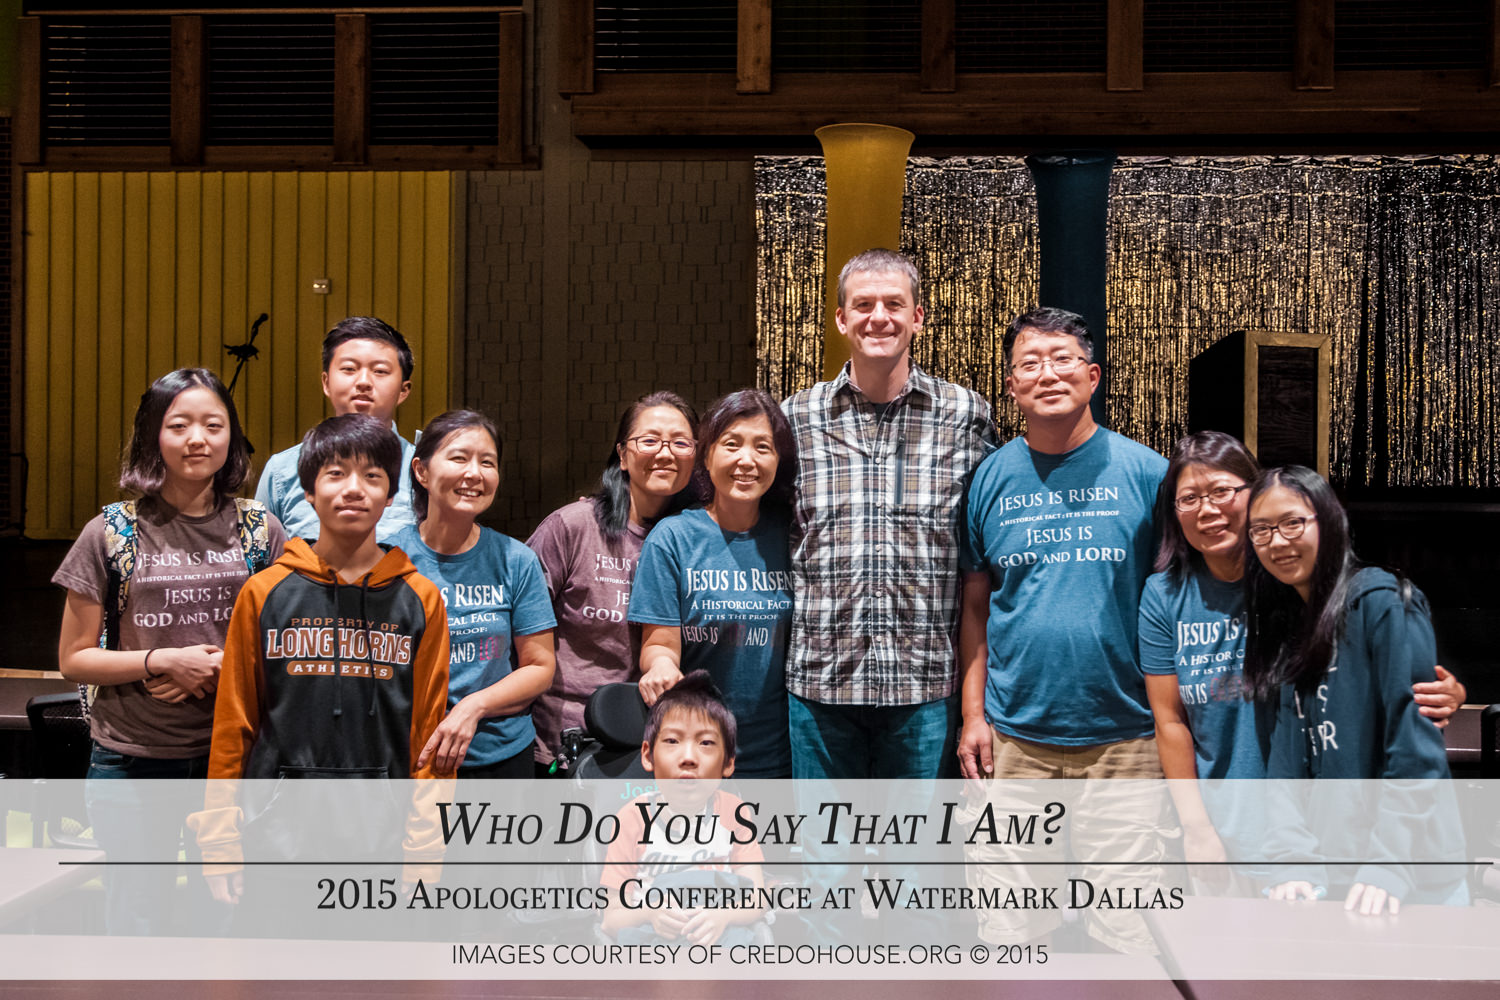 watermark-who-do-you-say-that-i-am-3547